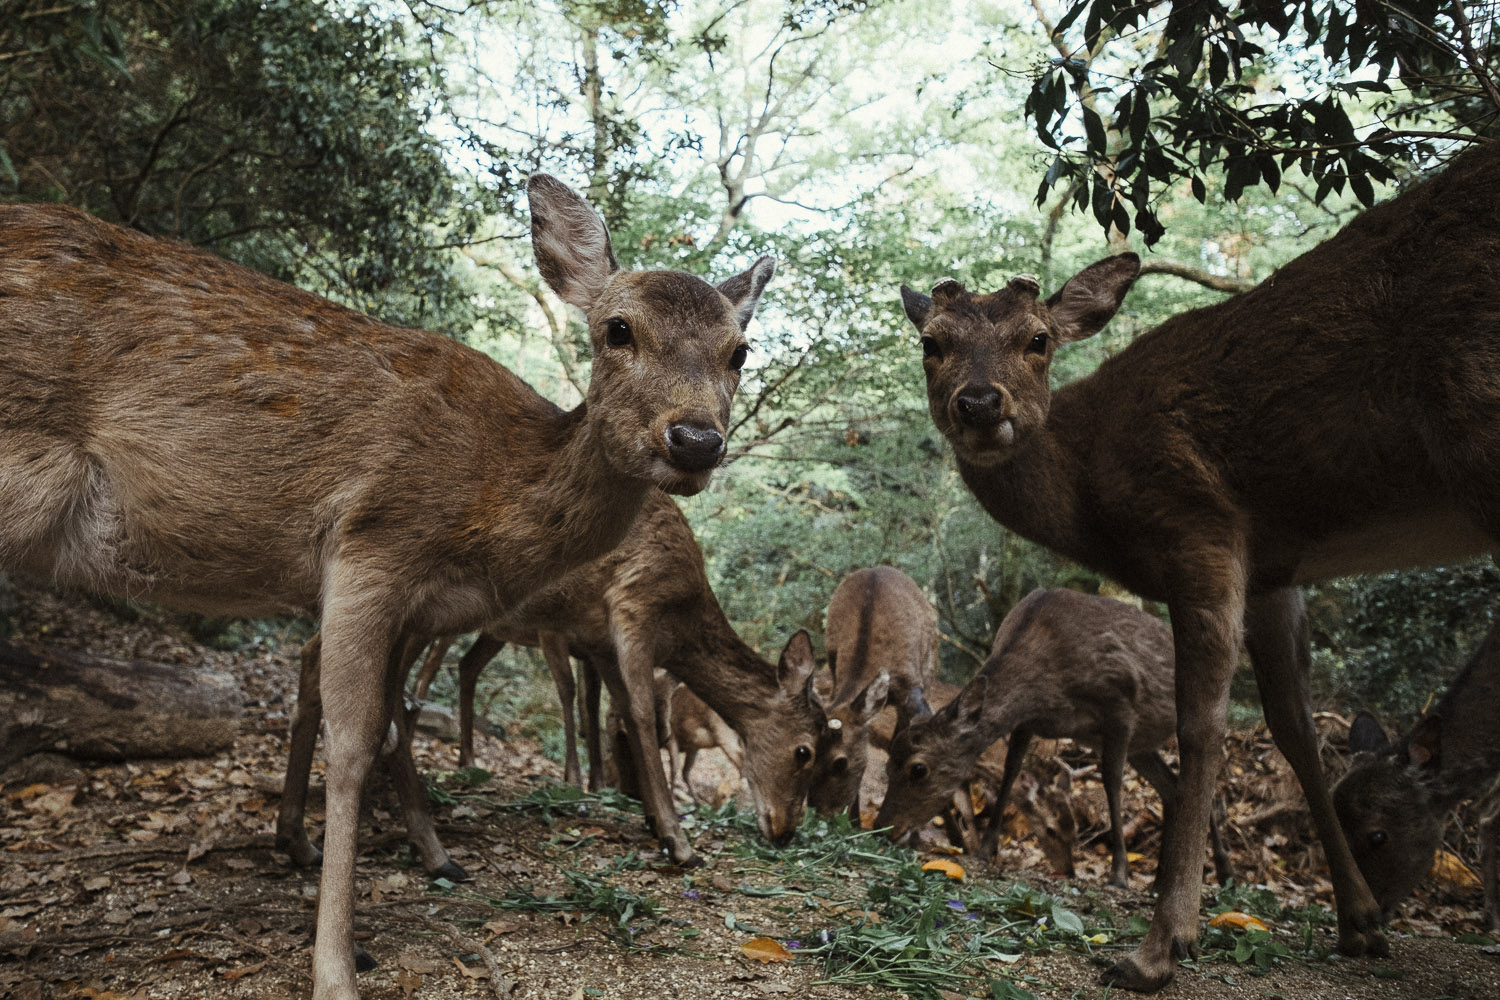 A whole pack of deer feeding on some greens and oranges someone dropped, Miyajima.